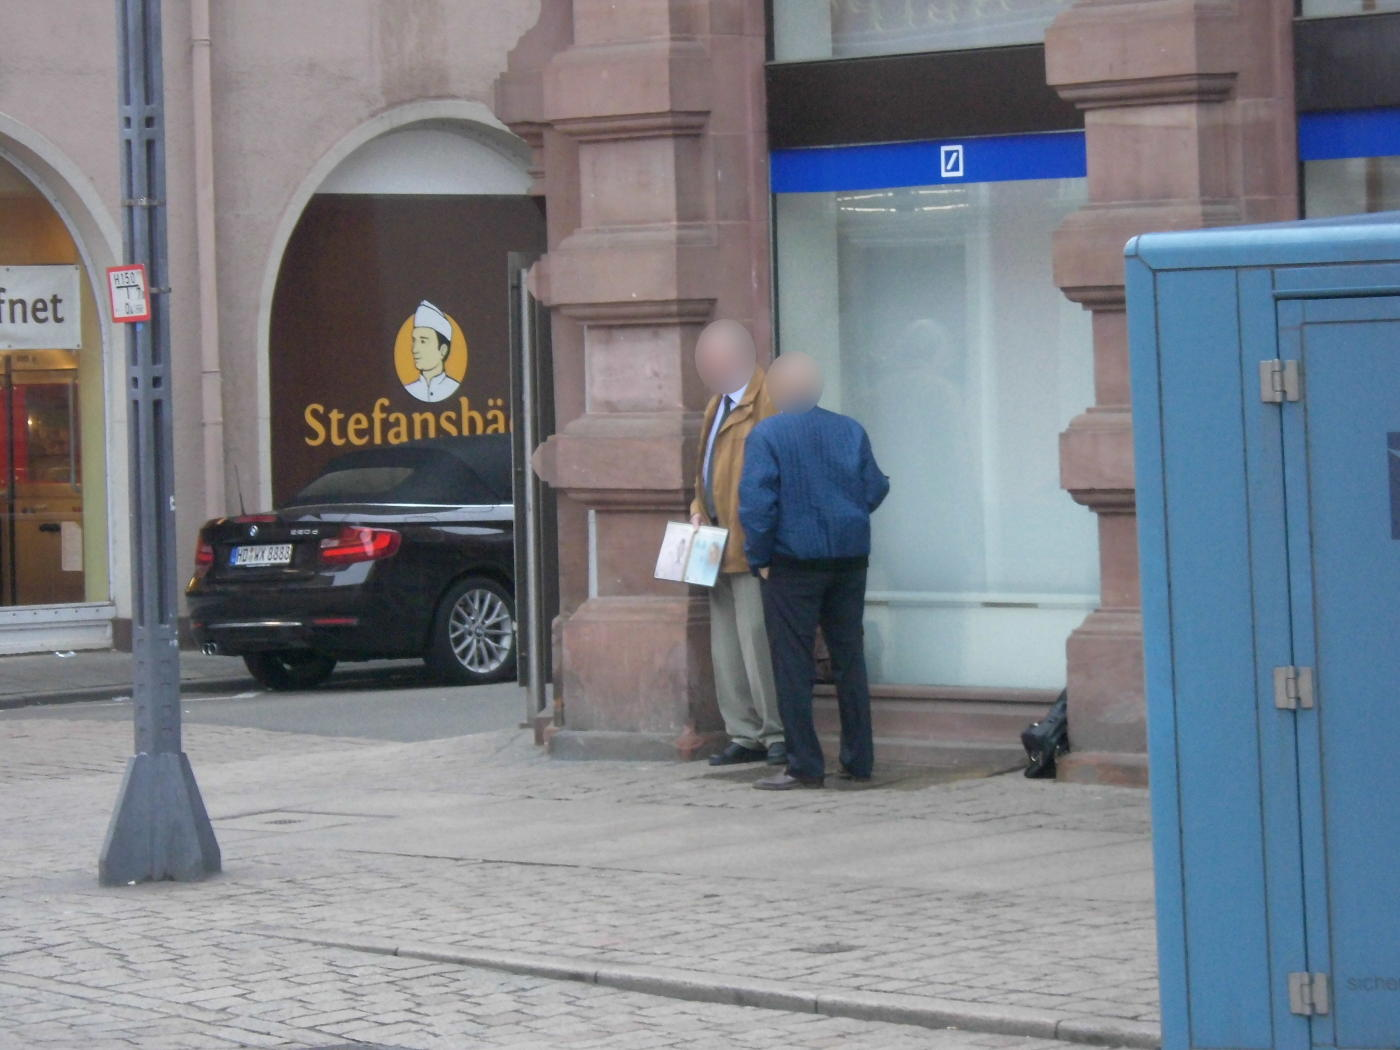 Speyer: I came, I saw, and Jehovah's Witnesses disappeared